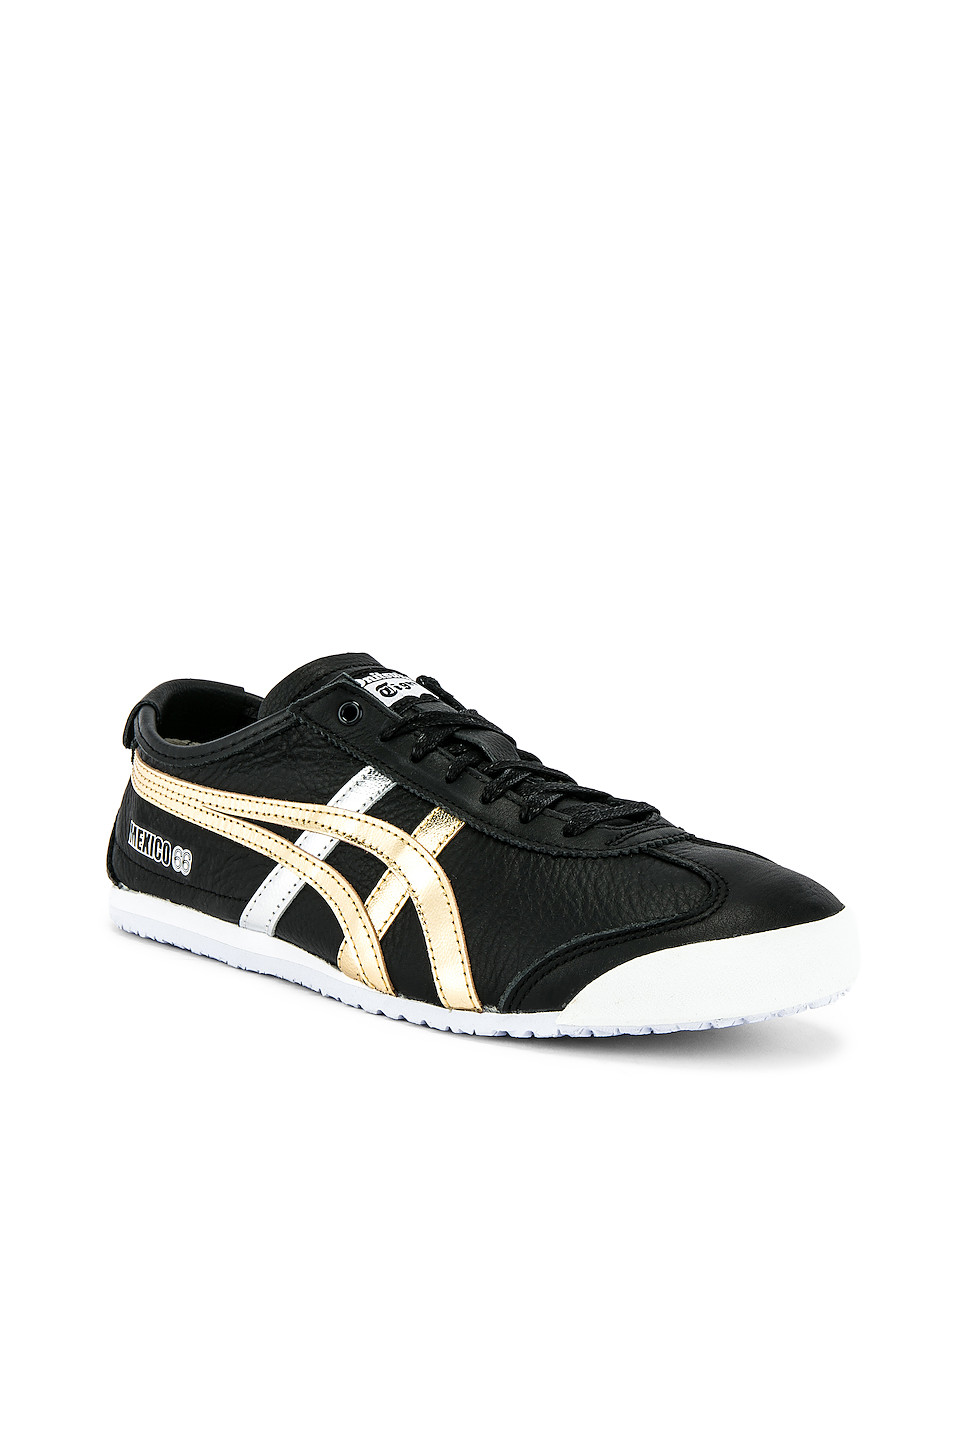 online store 780ec 7e27a Onitsuka Tiger Mexico 66 In Black. in Black & Gold